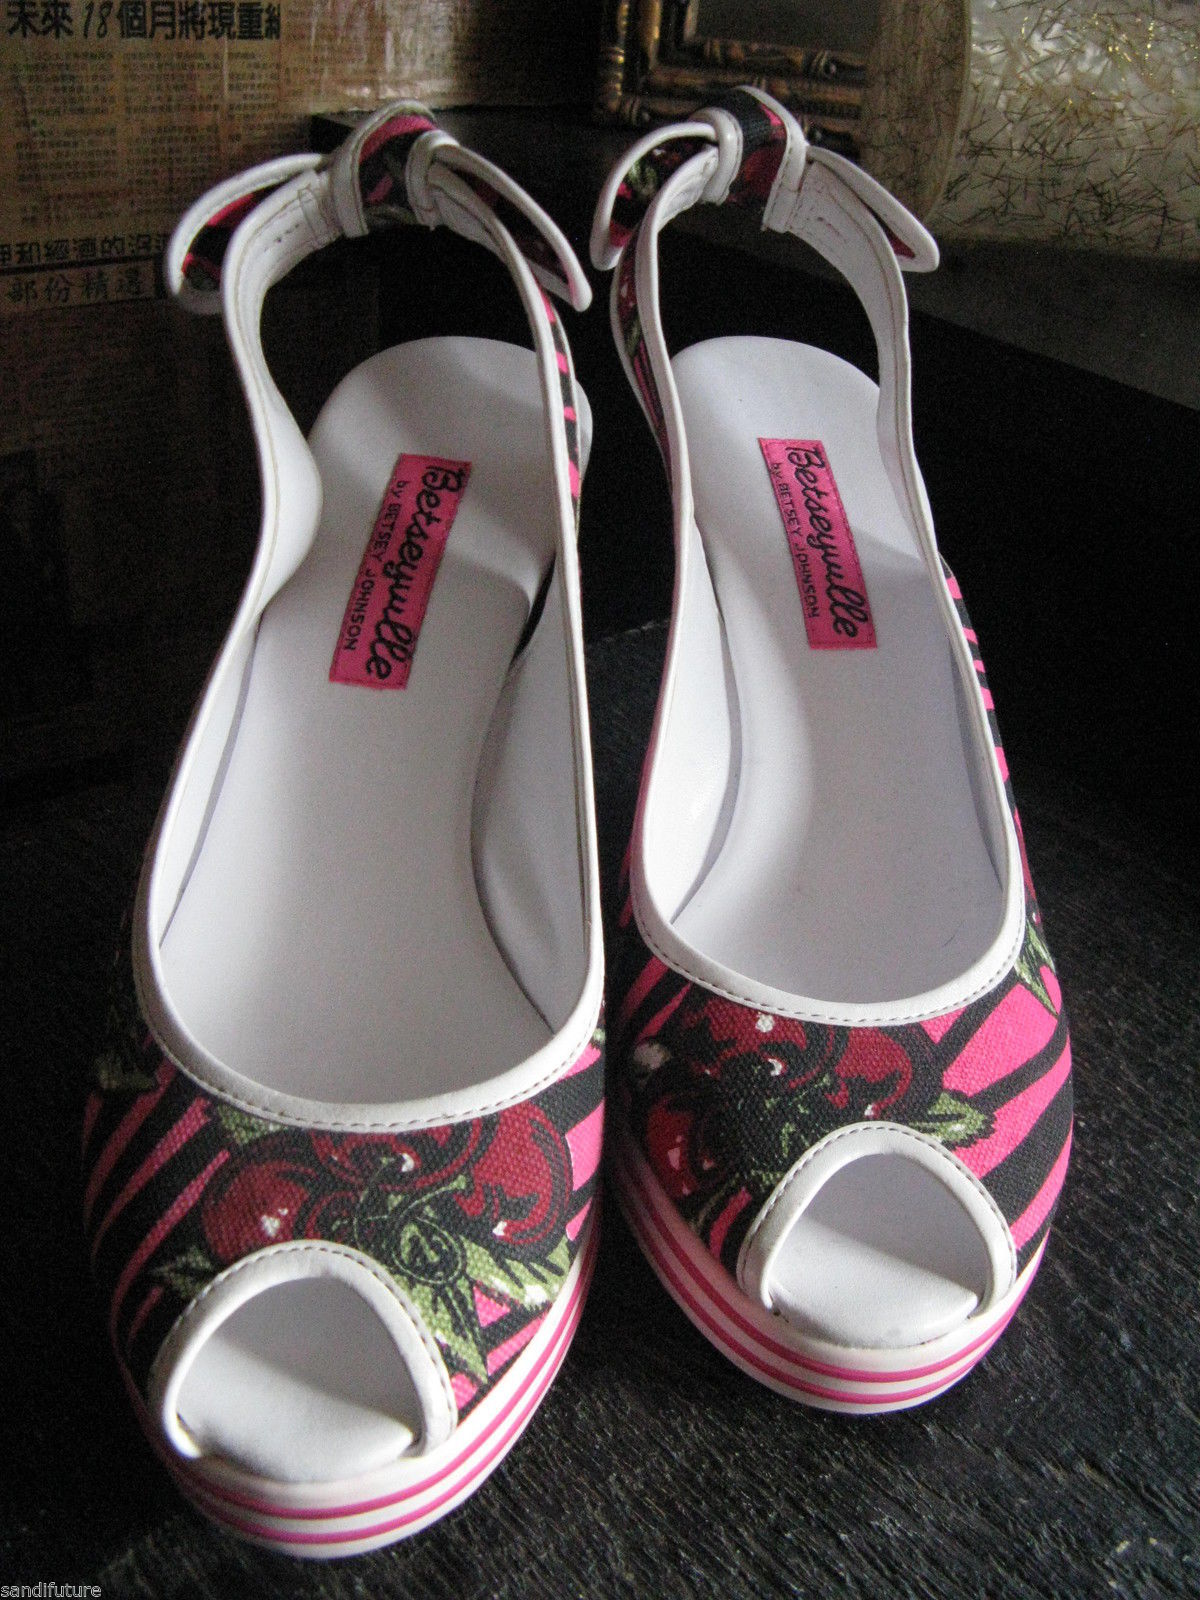 Betsey Johnson Betseyville cherry zebra wedge rockabilly pinup shoes VLV 6.5 UK4